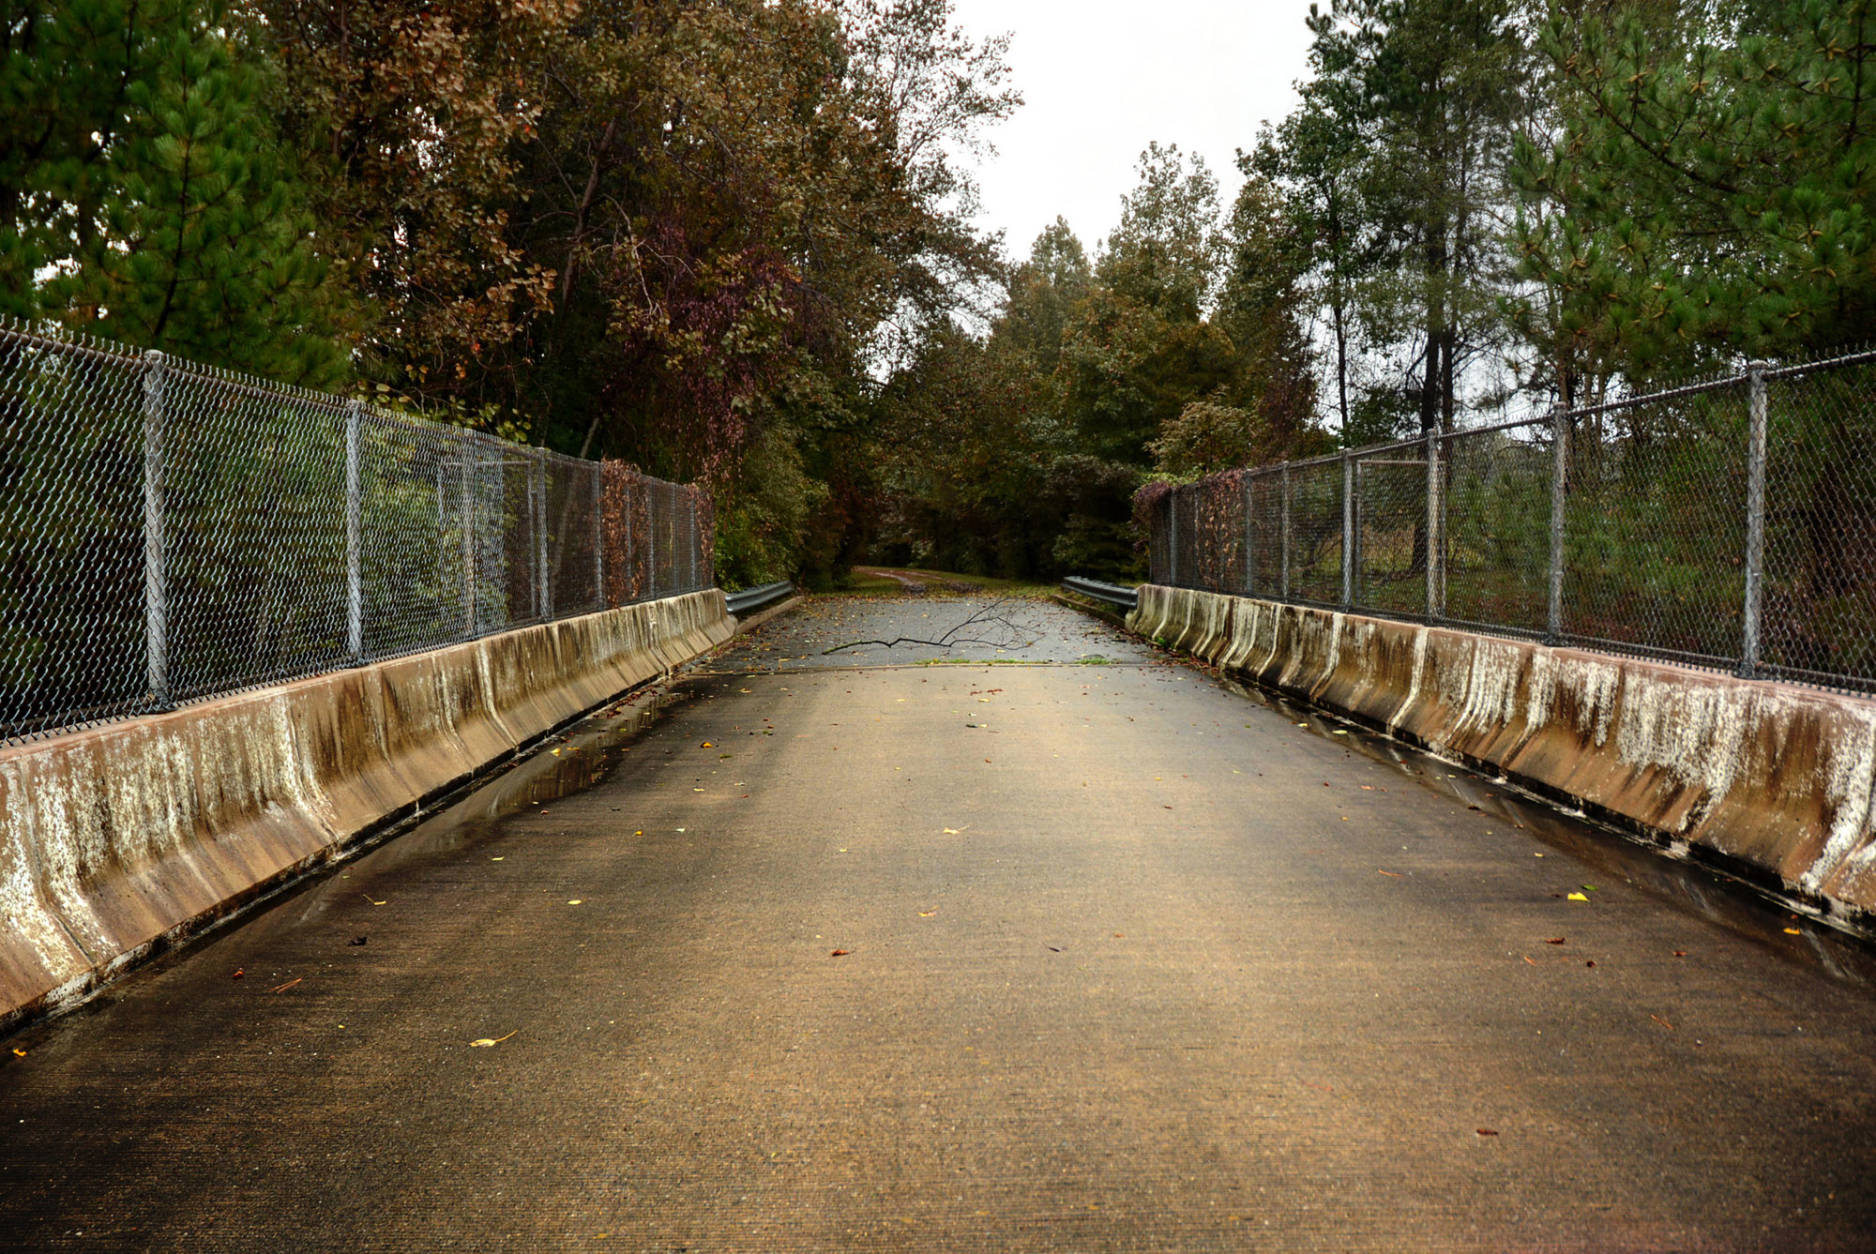 Farm Road Bridge – Crownsville, Md.  The Farm Road overpass above Interstate 97 marks the route along which deceased patients from the shuttered Crownsville Mental Hospital were taken to burial. The hospital's old cemetery lies on a quiet hill at the end of the road. (WTOP/Dave Dildine)